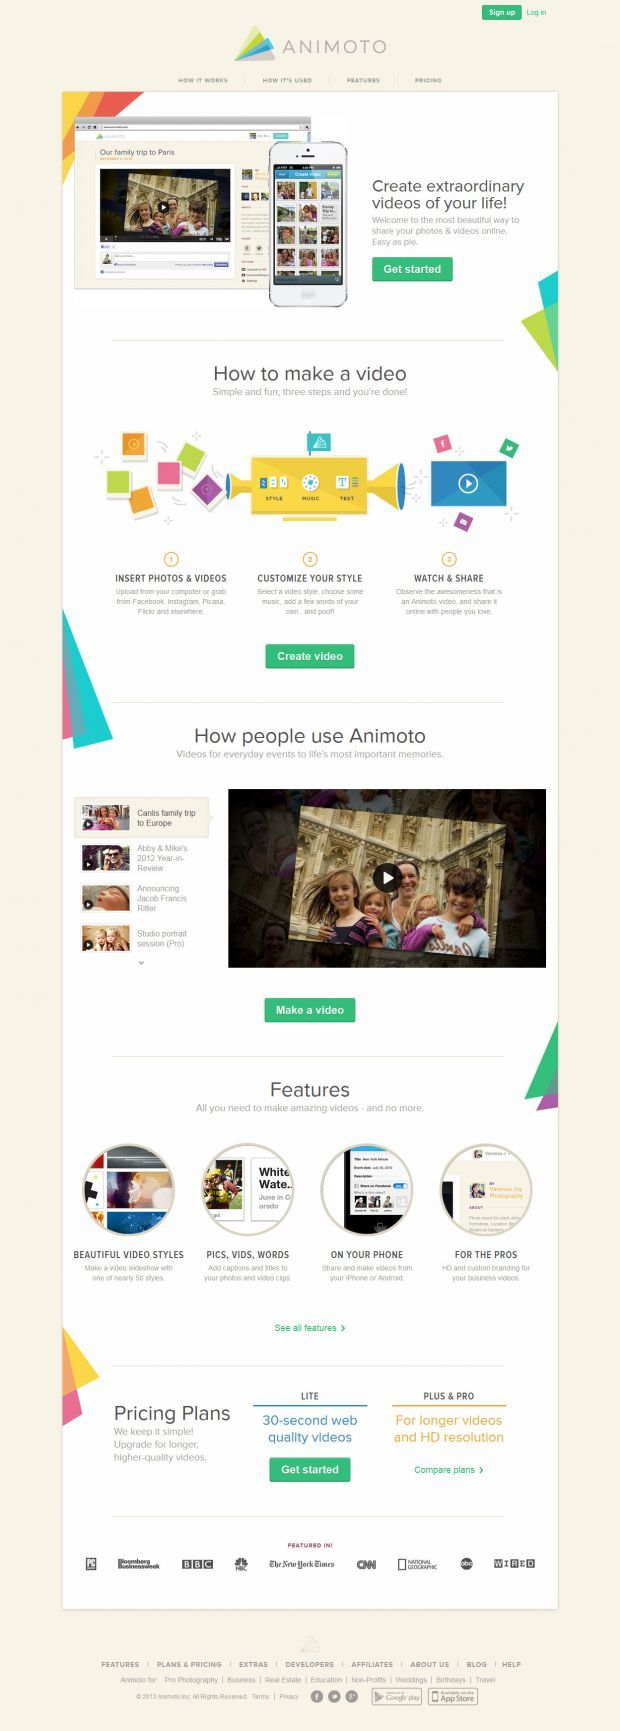 Animoto - Make and Share Beautiful Videos Online - #Webdesign #inspiration www.niceoneilike.com